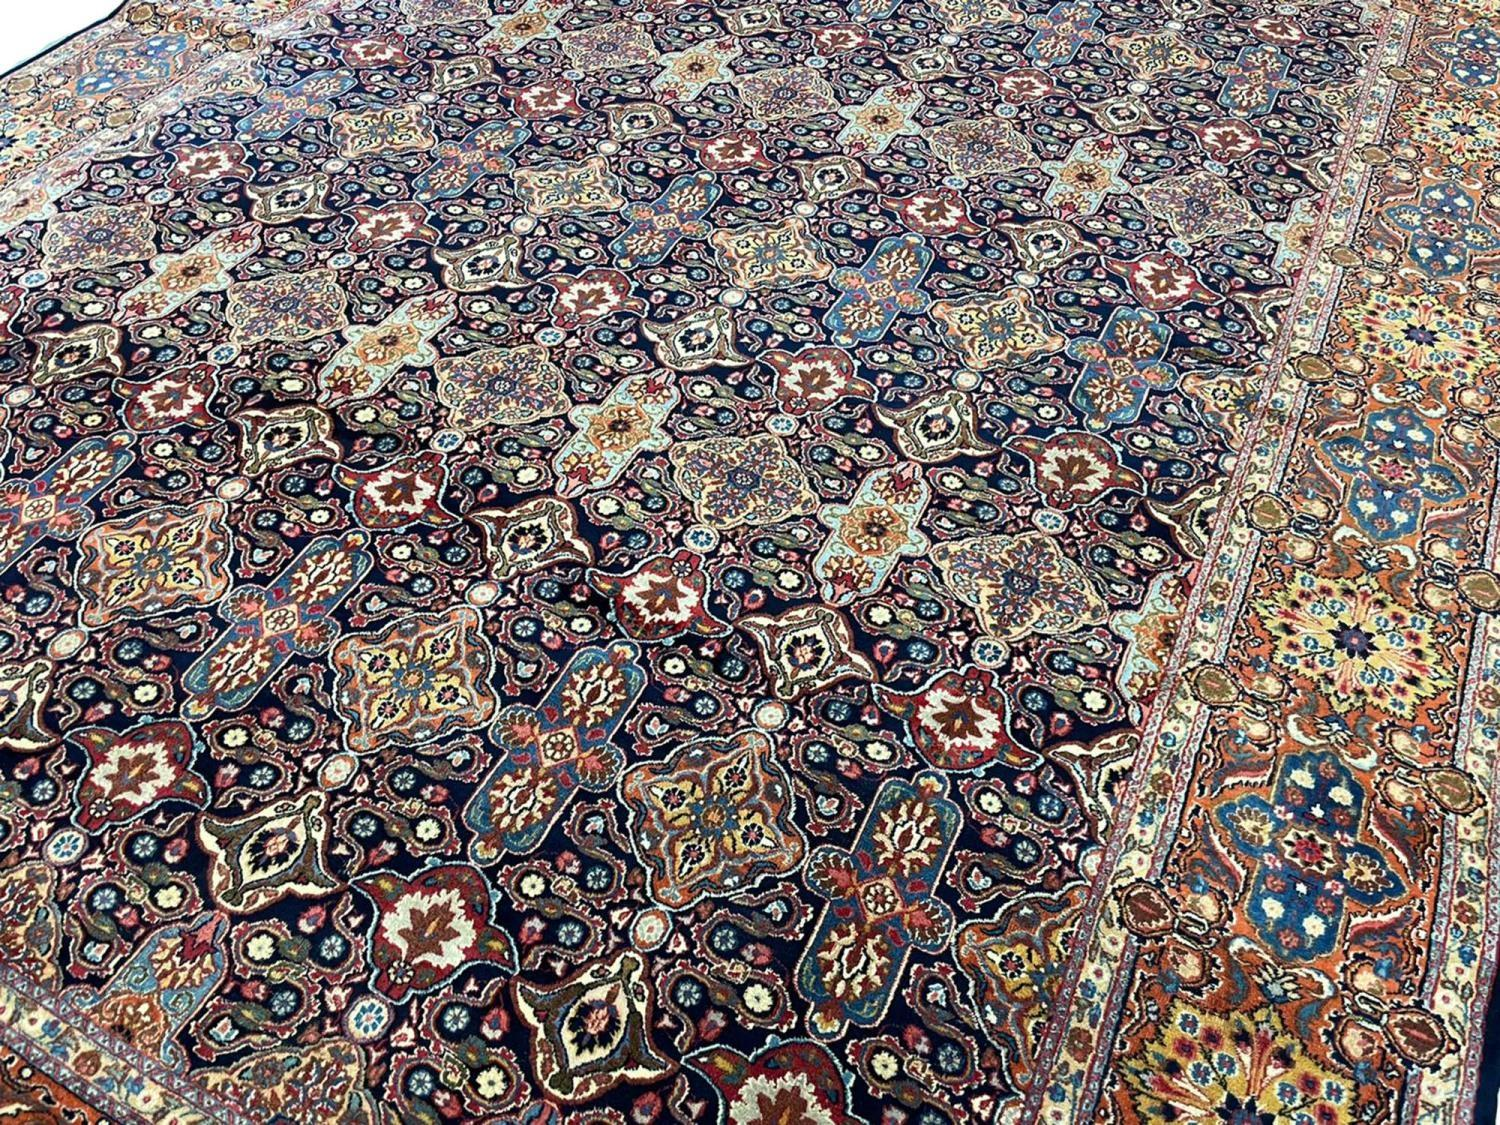 FINE ANTIQUE PERSIAN KHORASSAN CARPET, 340cm x 260cm. - Image 4 of 5